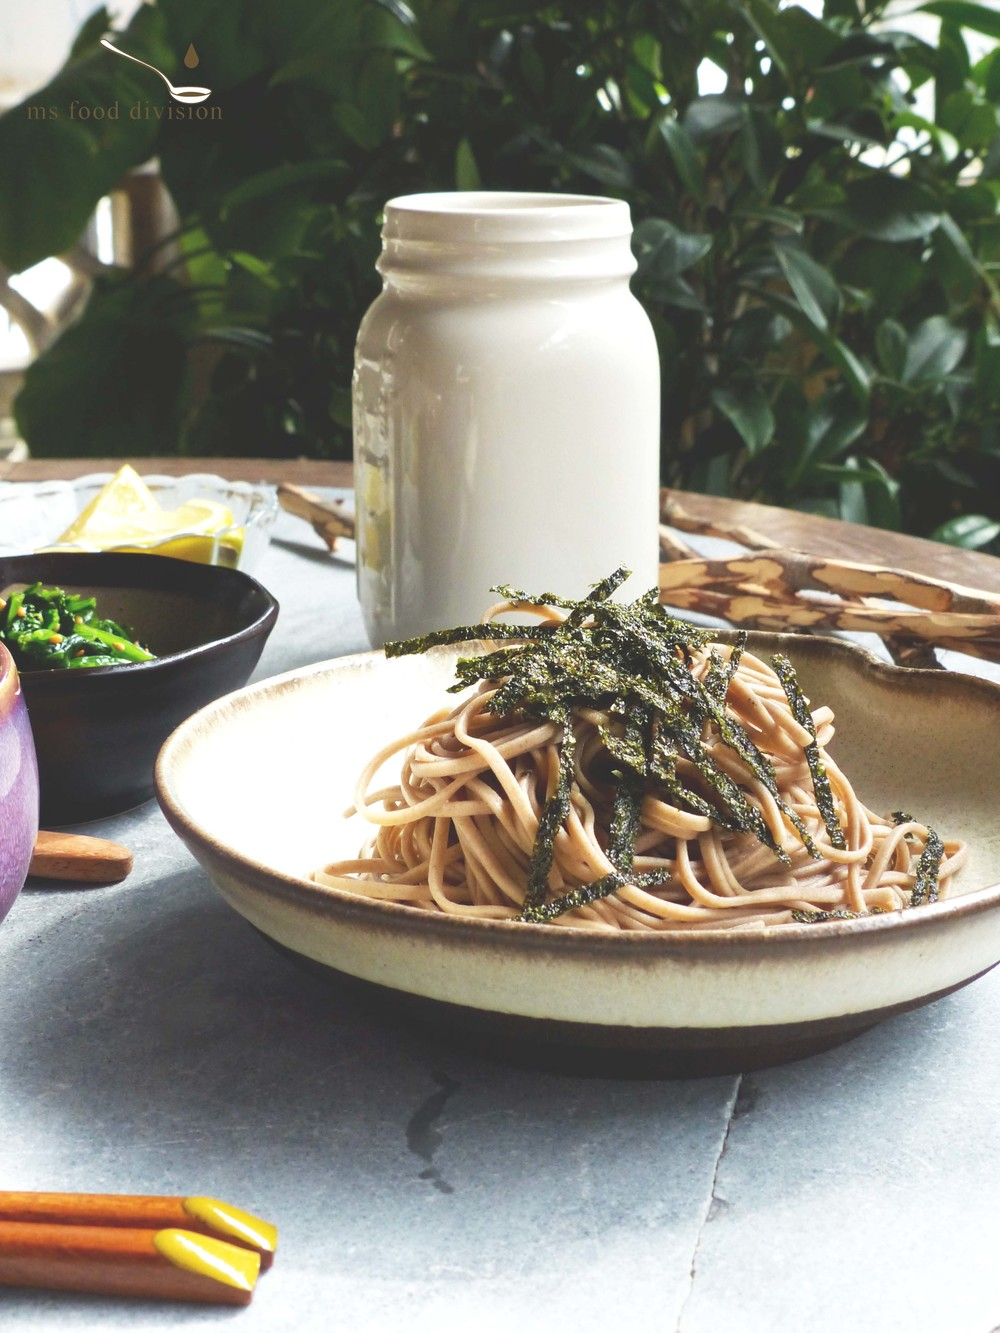 cold soba and sauce   100g soba, cooked according to the package label  1 tbsp chopped spring onion  1 tsp grated ginger  1/2 tsp wasabi  1/4 (3 tbsp) small bowl soy sauce  1/4 (3 tbsp) small bowl mirin  1 tbsp rice vinegar  1 tsp brown sugar  1/2 small bowl water   Instructions:    1) Run cold water to the cooked soba, drain well. Transfer a serving dish.    2) Get asmallbowl, addmirin, soy sauce, rice vinegar, water and a little bit of grated ginger and ginger juice.    3) Get a small soy sauce dish, place wasabi, grated ginger, and chopped spring onion as a side dish for the cold soba.*    * People normally pair cold soba with a quail egg but I don't have any plus I'm not a huge fan of quail egg so that's all I'm serving here.